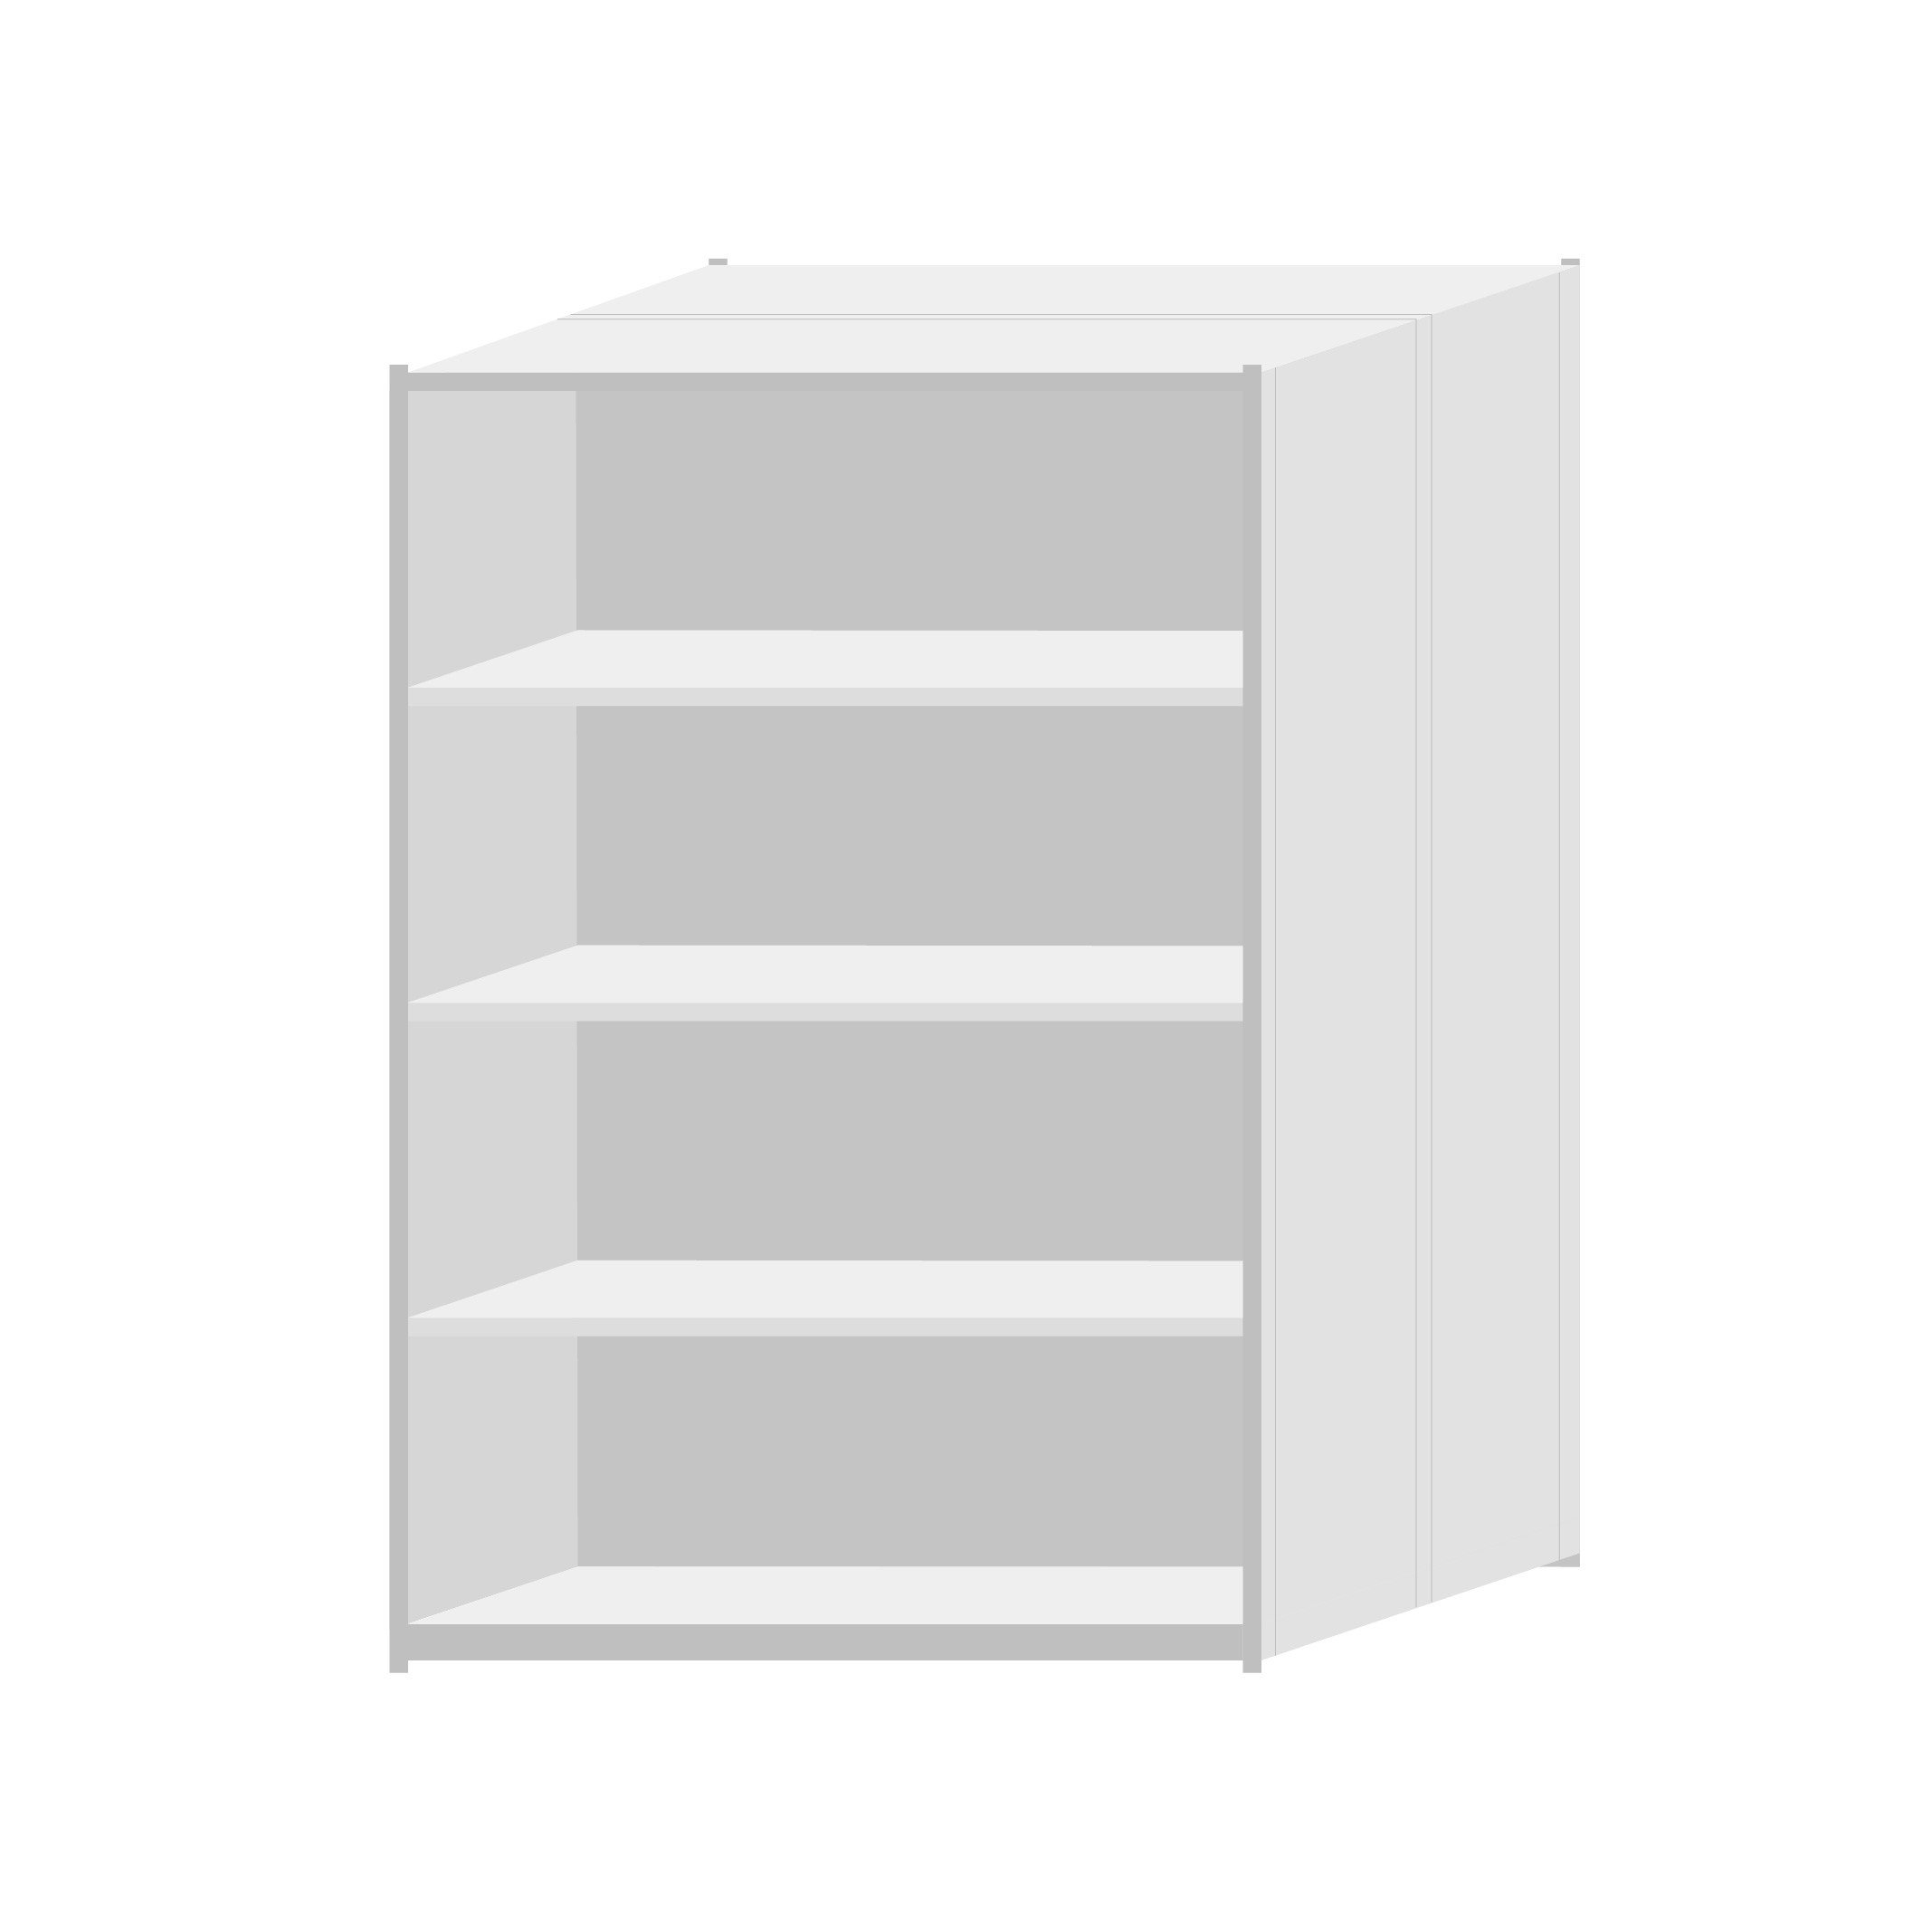 RUT Shelving 1200mm Wide - 5 Levels (Double Sided)